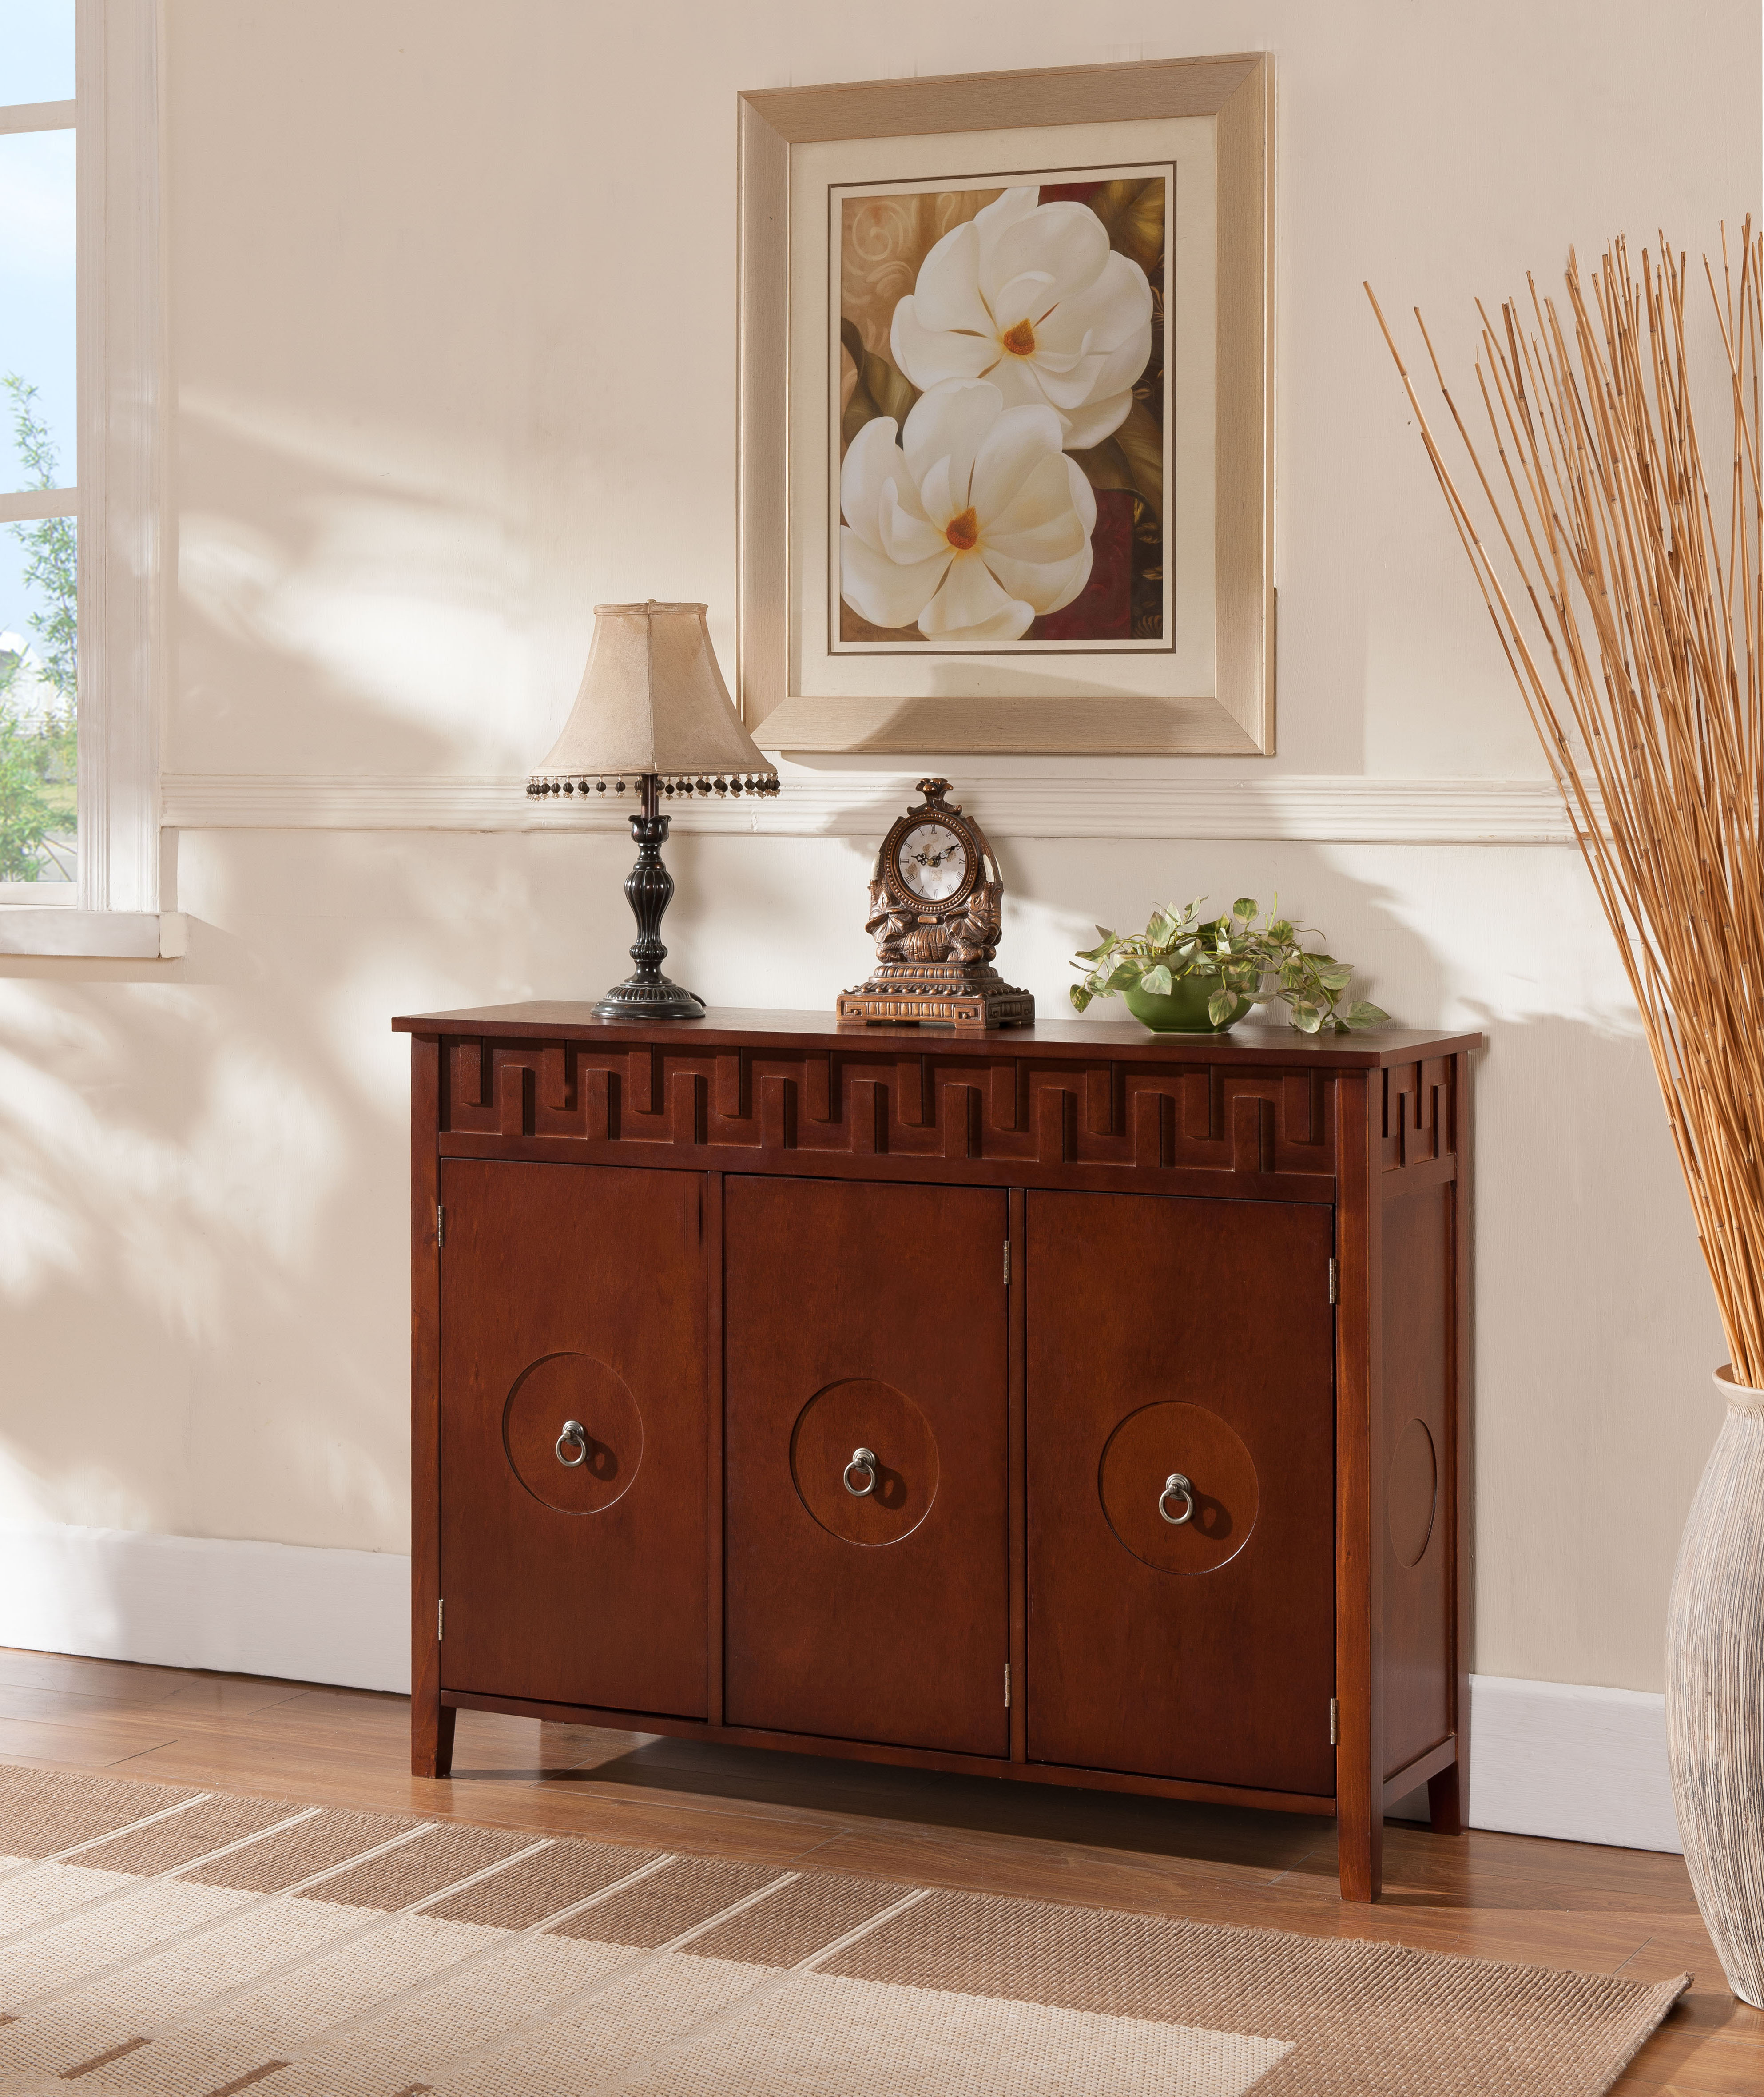 Grayson Walnut Wood Contemporary Sideboard Buffet Display Console Table  With Storage Cabinet Doors